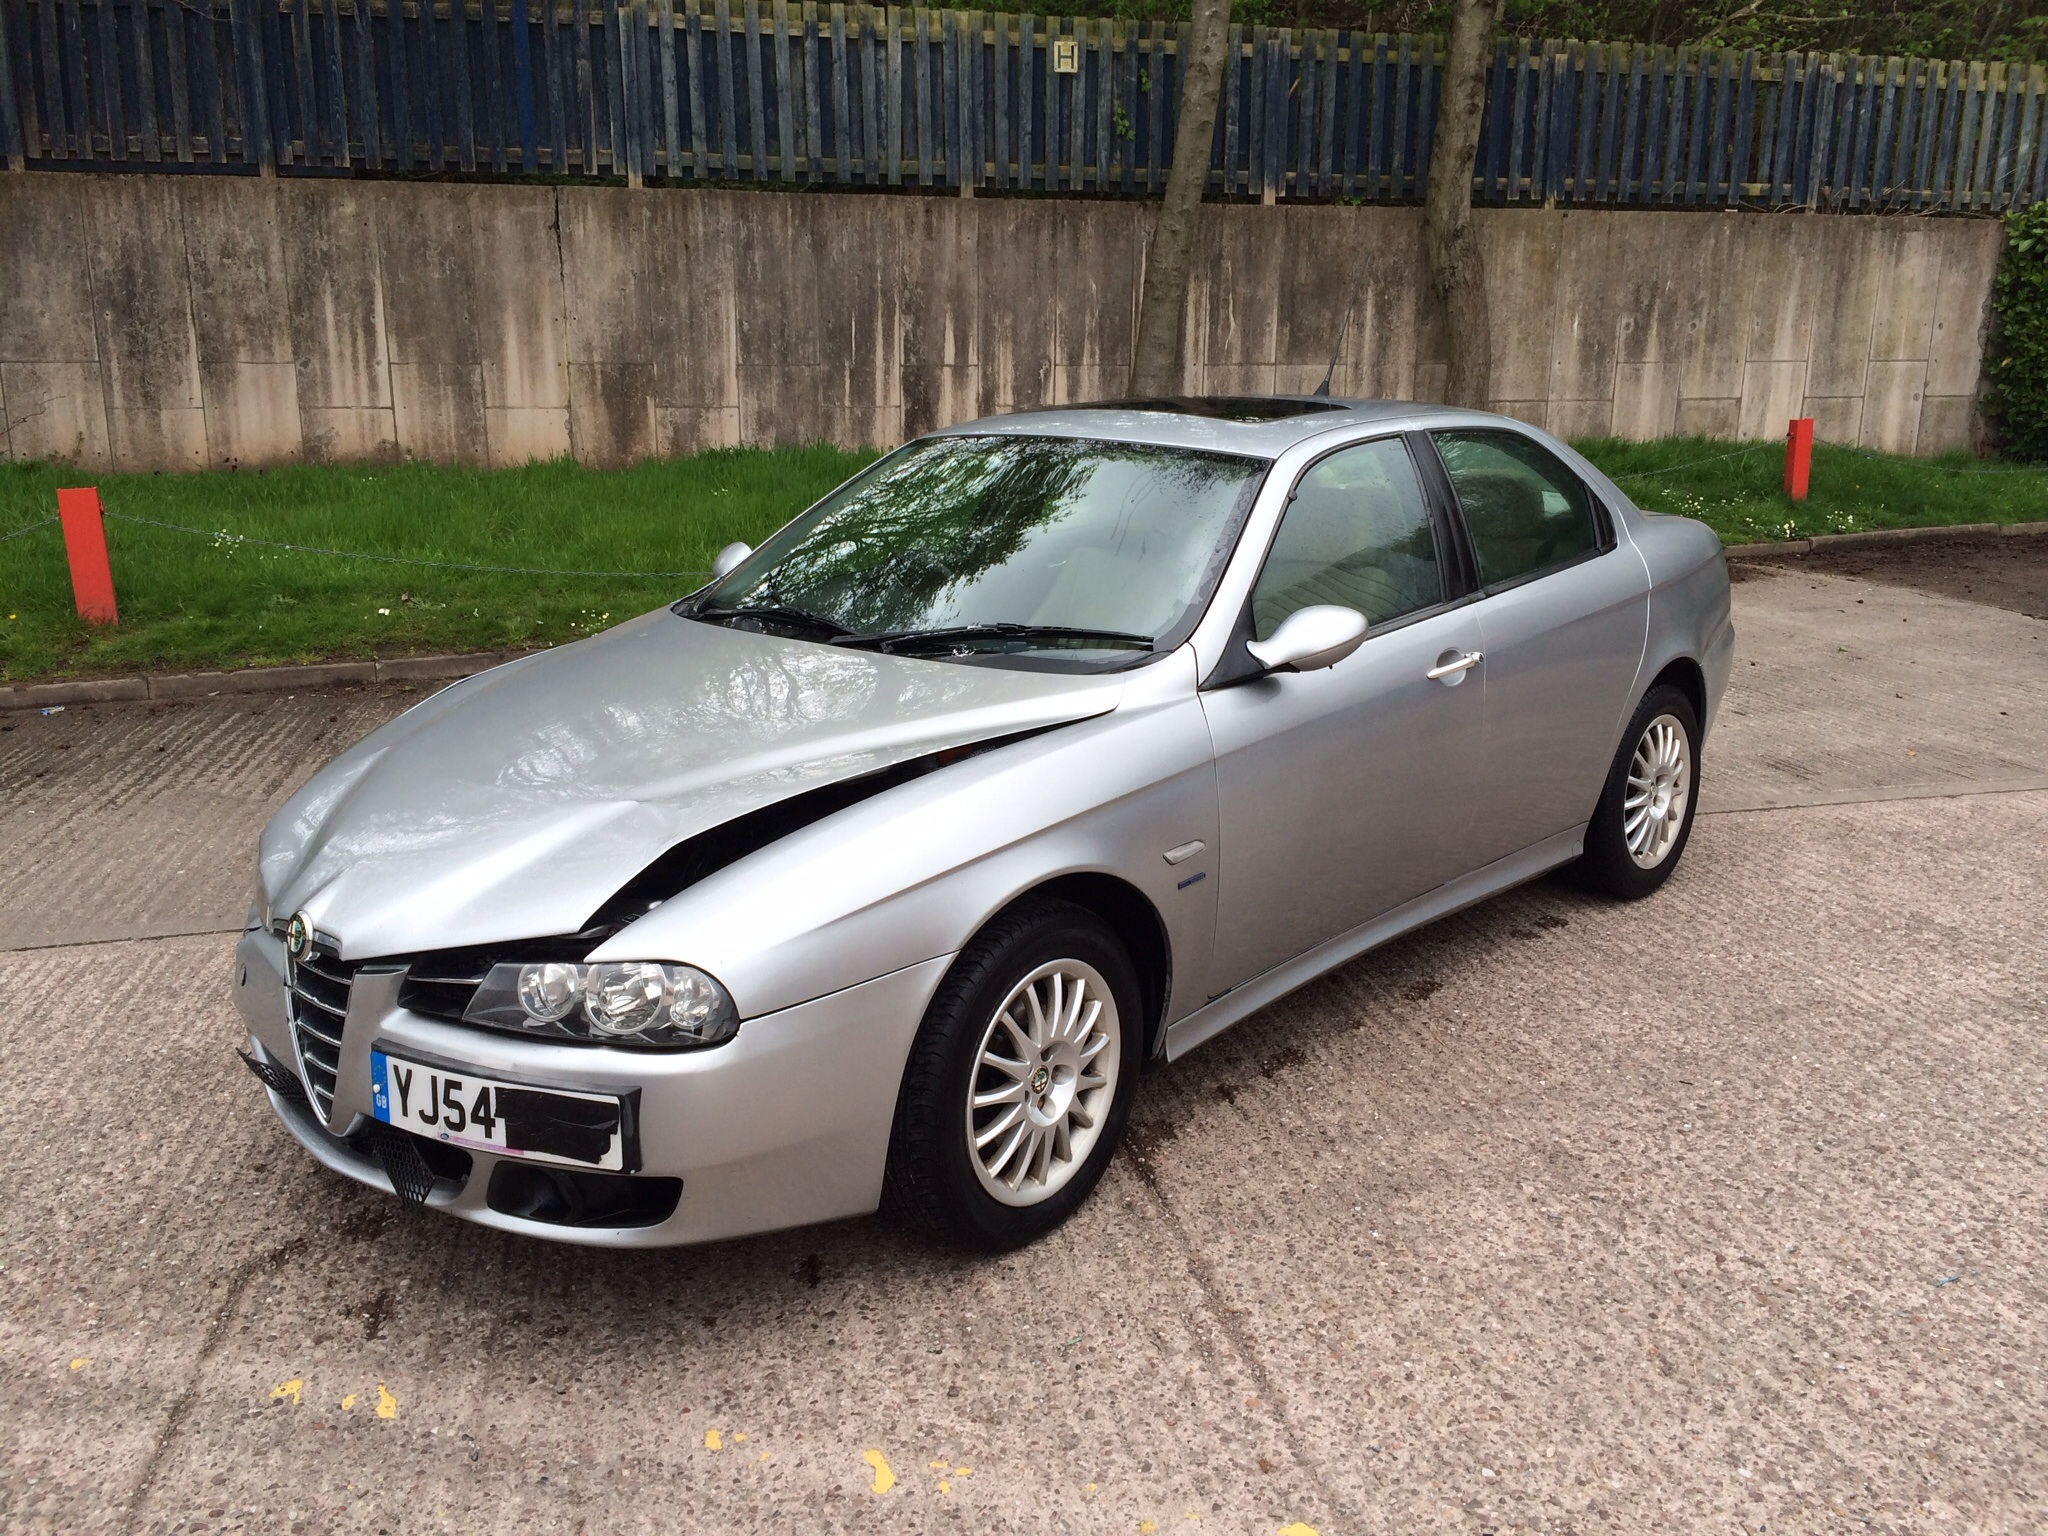 alfa romeo 156 facelift 2 0 jts 72000 miles breaking for spares italia auto parts. Black Bedroom Furniture Sets. Home Design Ideas